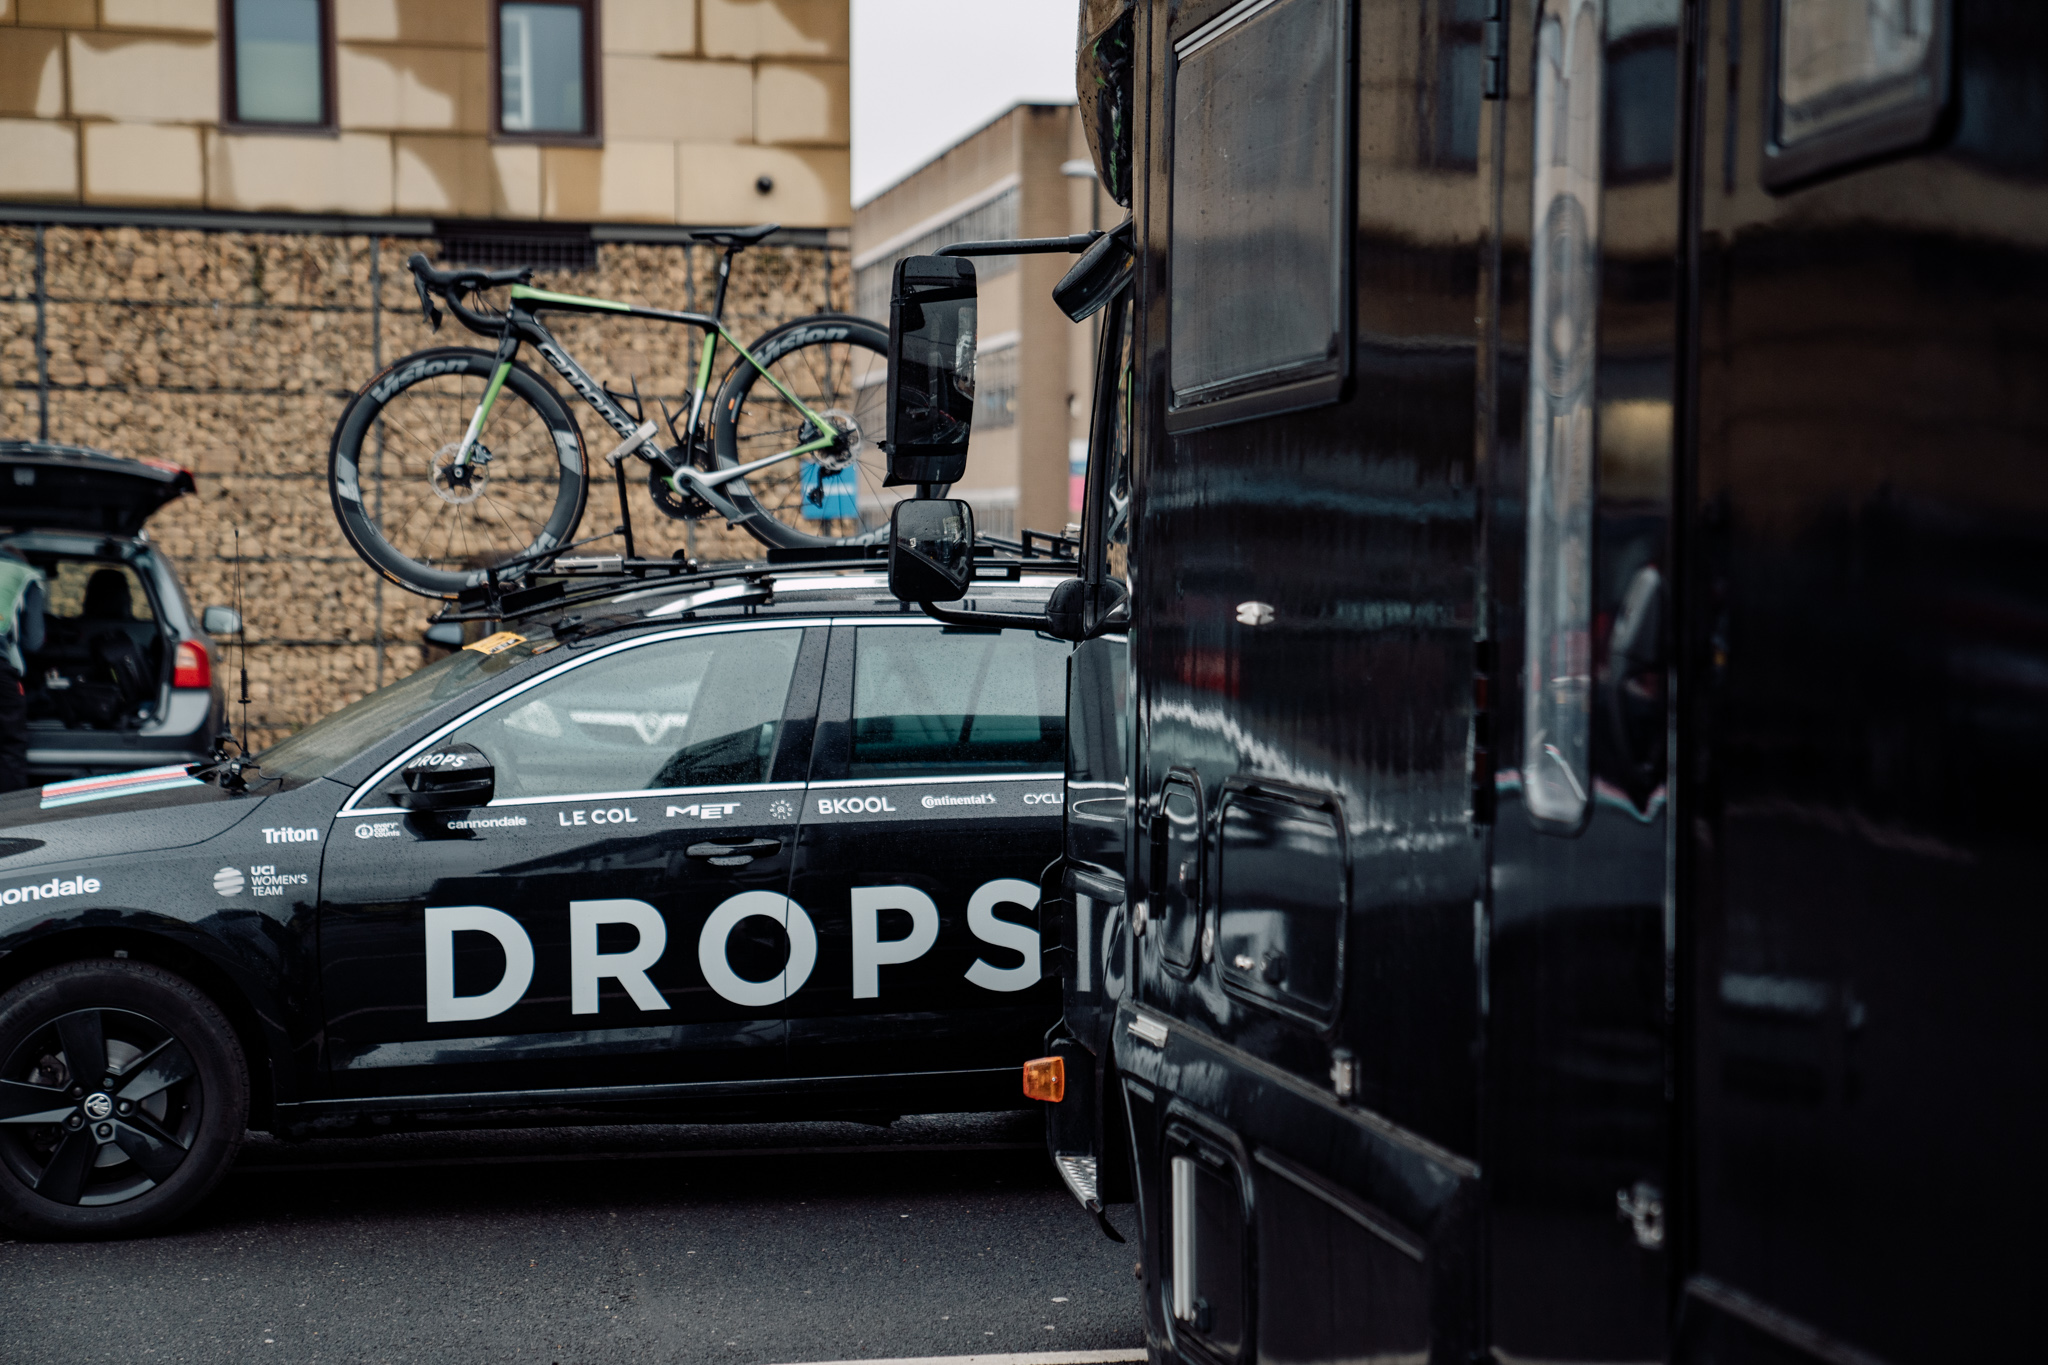 Co-Owner of Drops Team, pulls back the curtain on realities of professional women's cycling